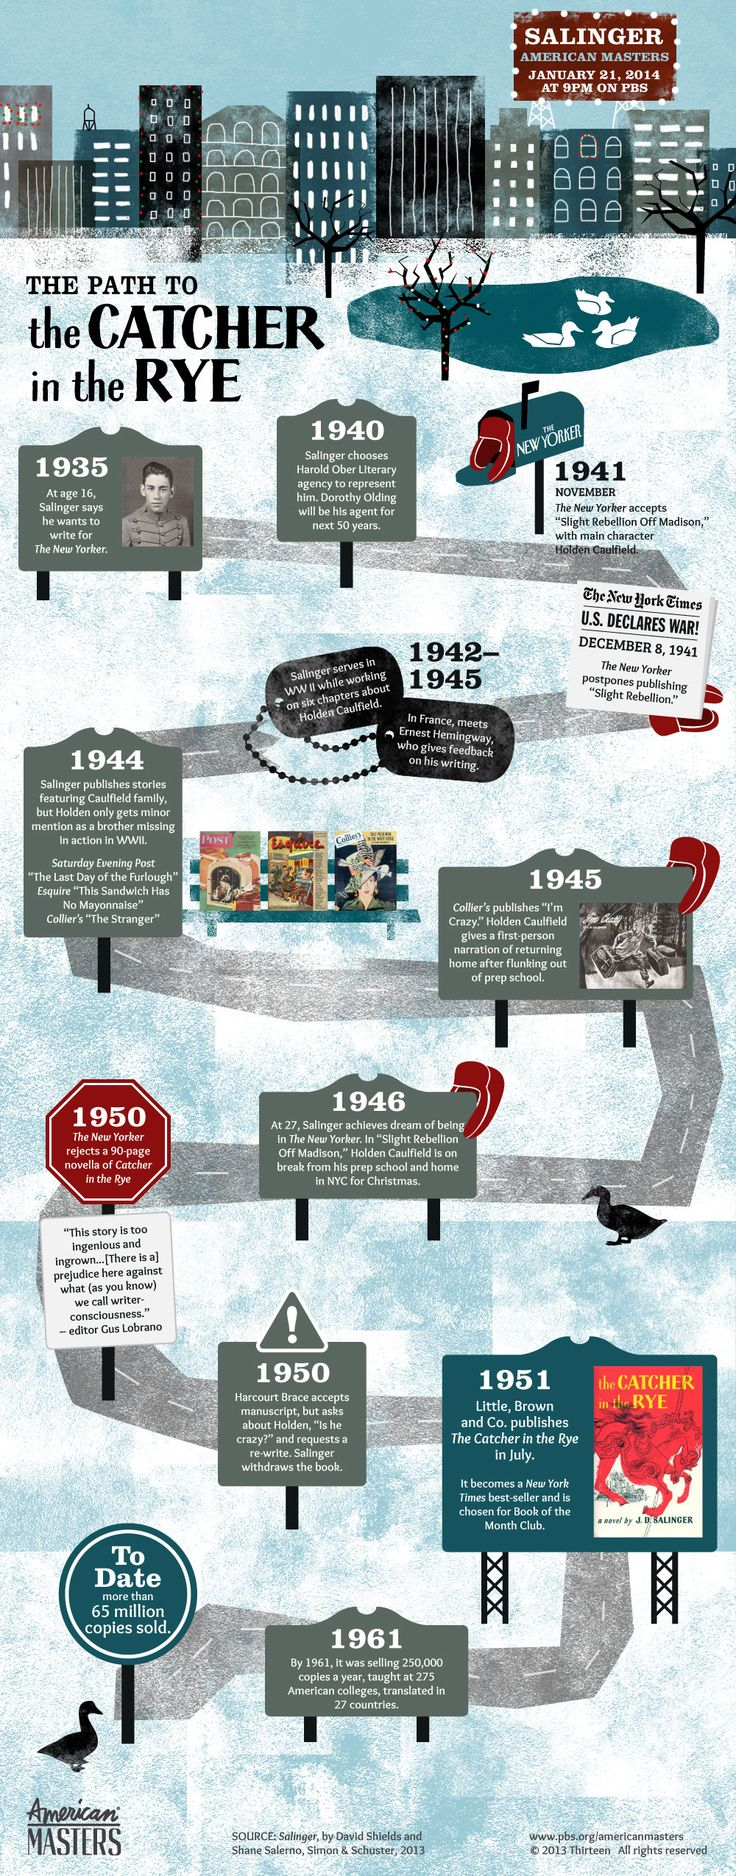 "JD Salinger Infographic: The Path to ""The Catcher in the Rye"" In 1951 J.D. Salinger published The Catcher in the Rye, a debut novel that became one of the best known works in American literature. The book's beloved anti-hero, Holden Caulfield, had been making appearances in Salinger's writing since 1941. Follow the milestones in Salinger's career that led to his most famous book. Click the image to enlarge."